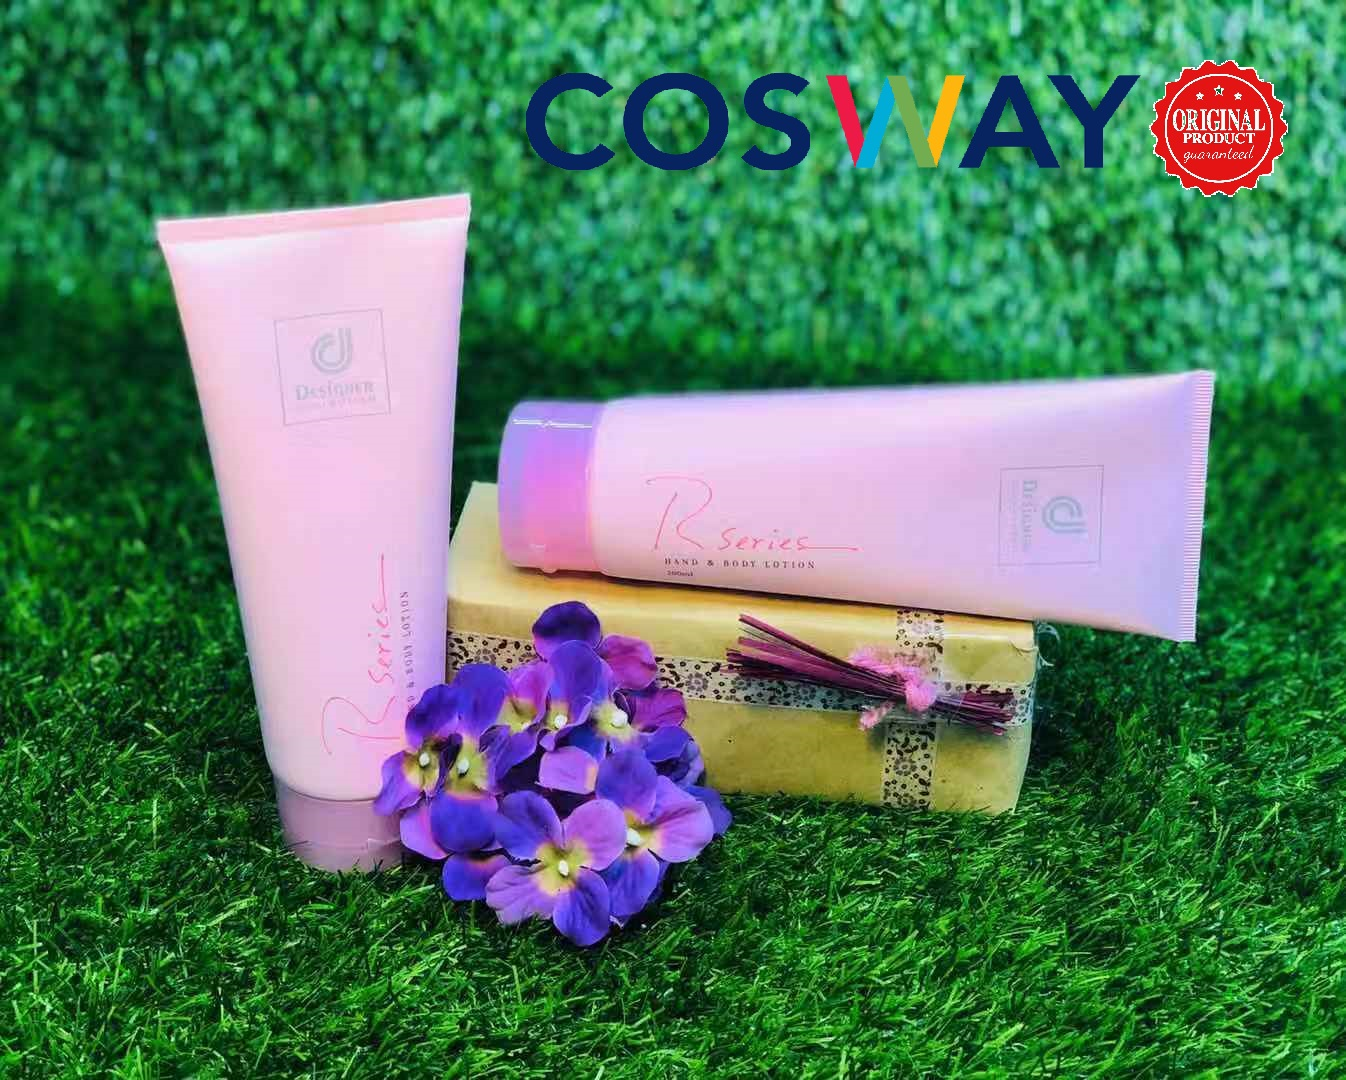 GS009- Cosway Designer Collection R Series Hand & Body Lotion - Gift Set 2in1 (Original Cosway)